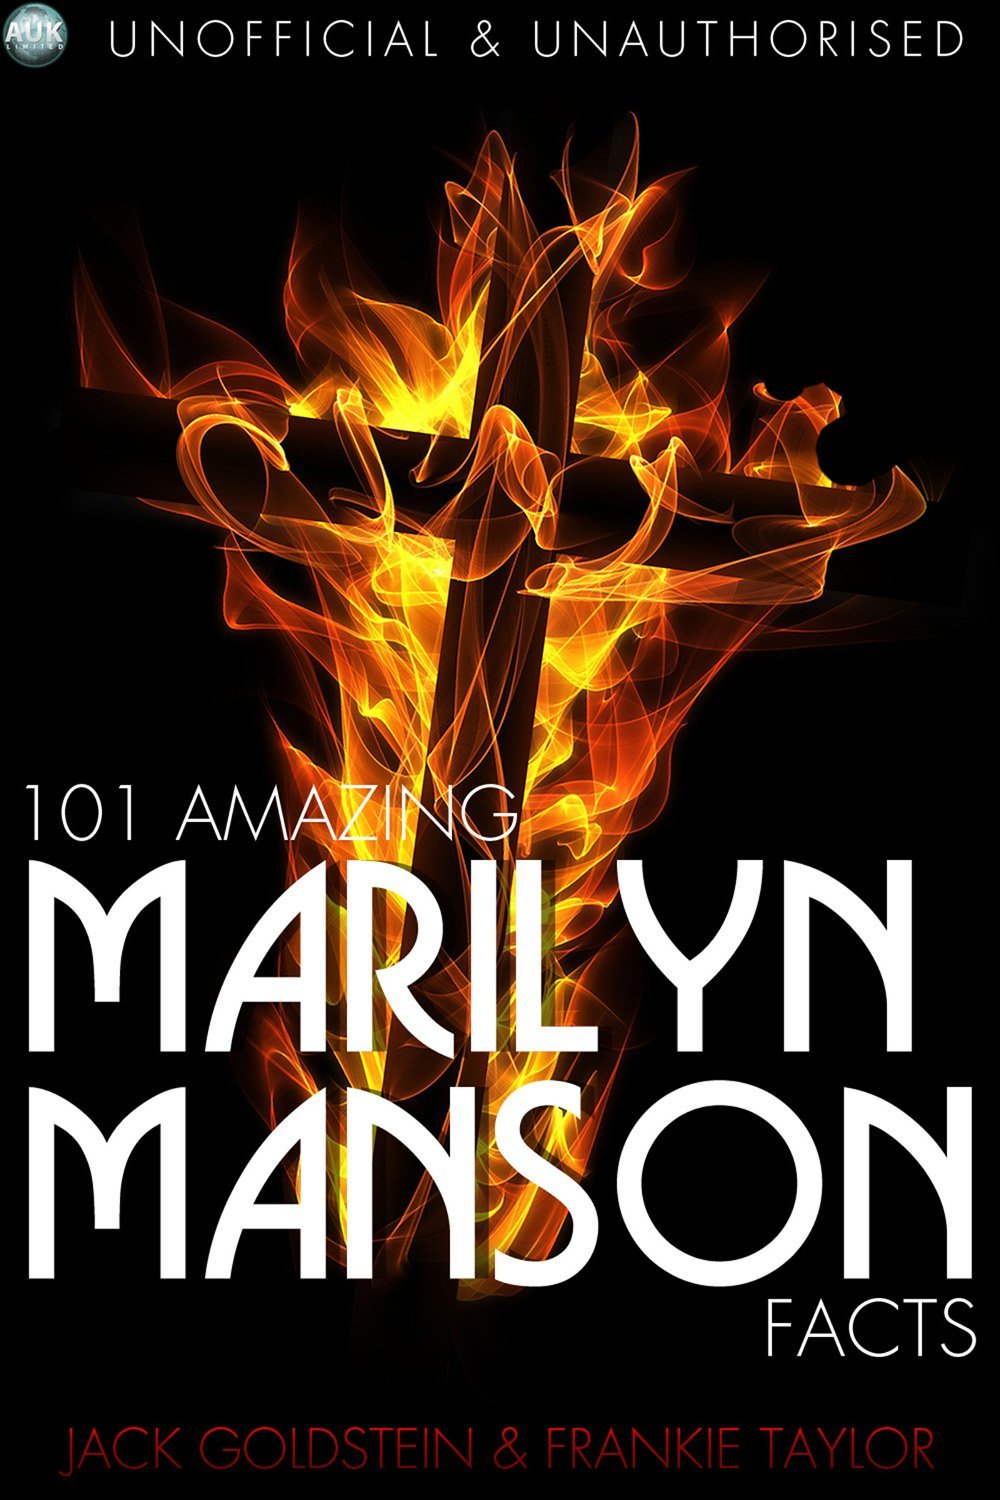 101 Amazing Marilyn Manson Facts cover